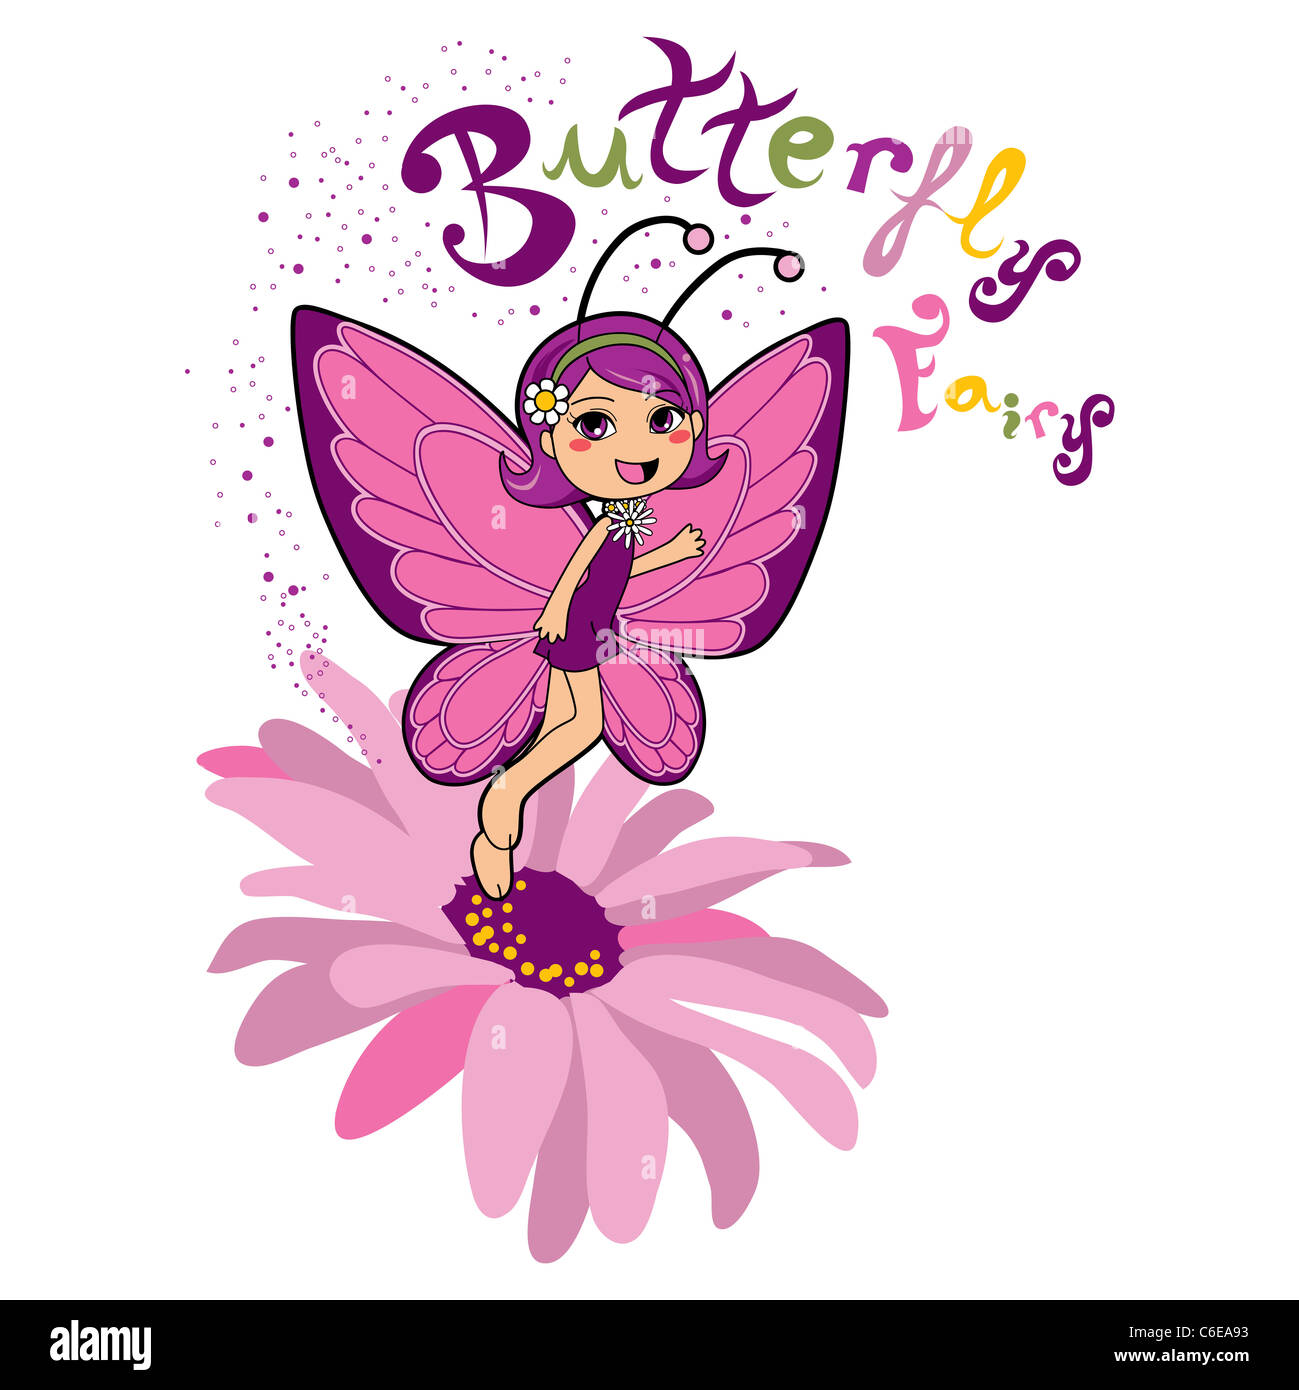 Fairy Wings Pink Flower Stock Photos Fairy Wings Pink Flower Stock